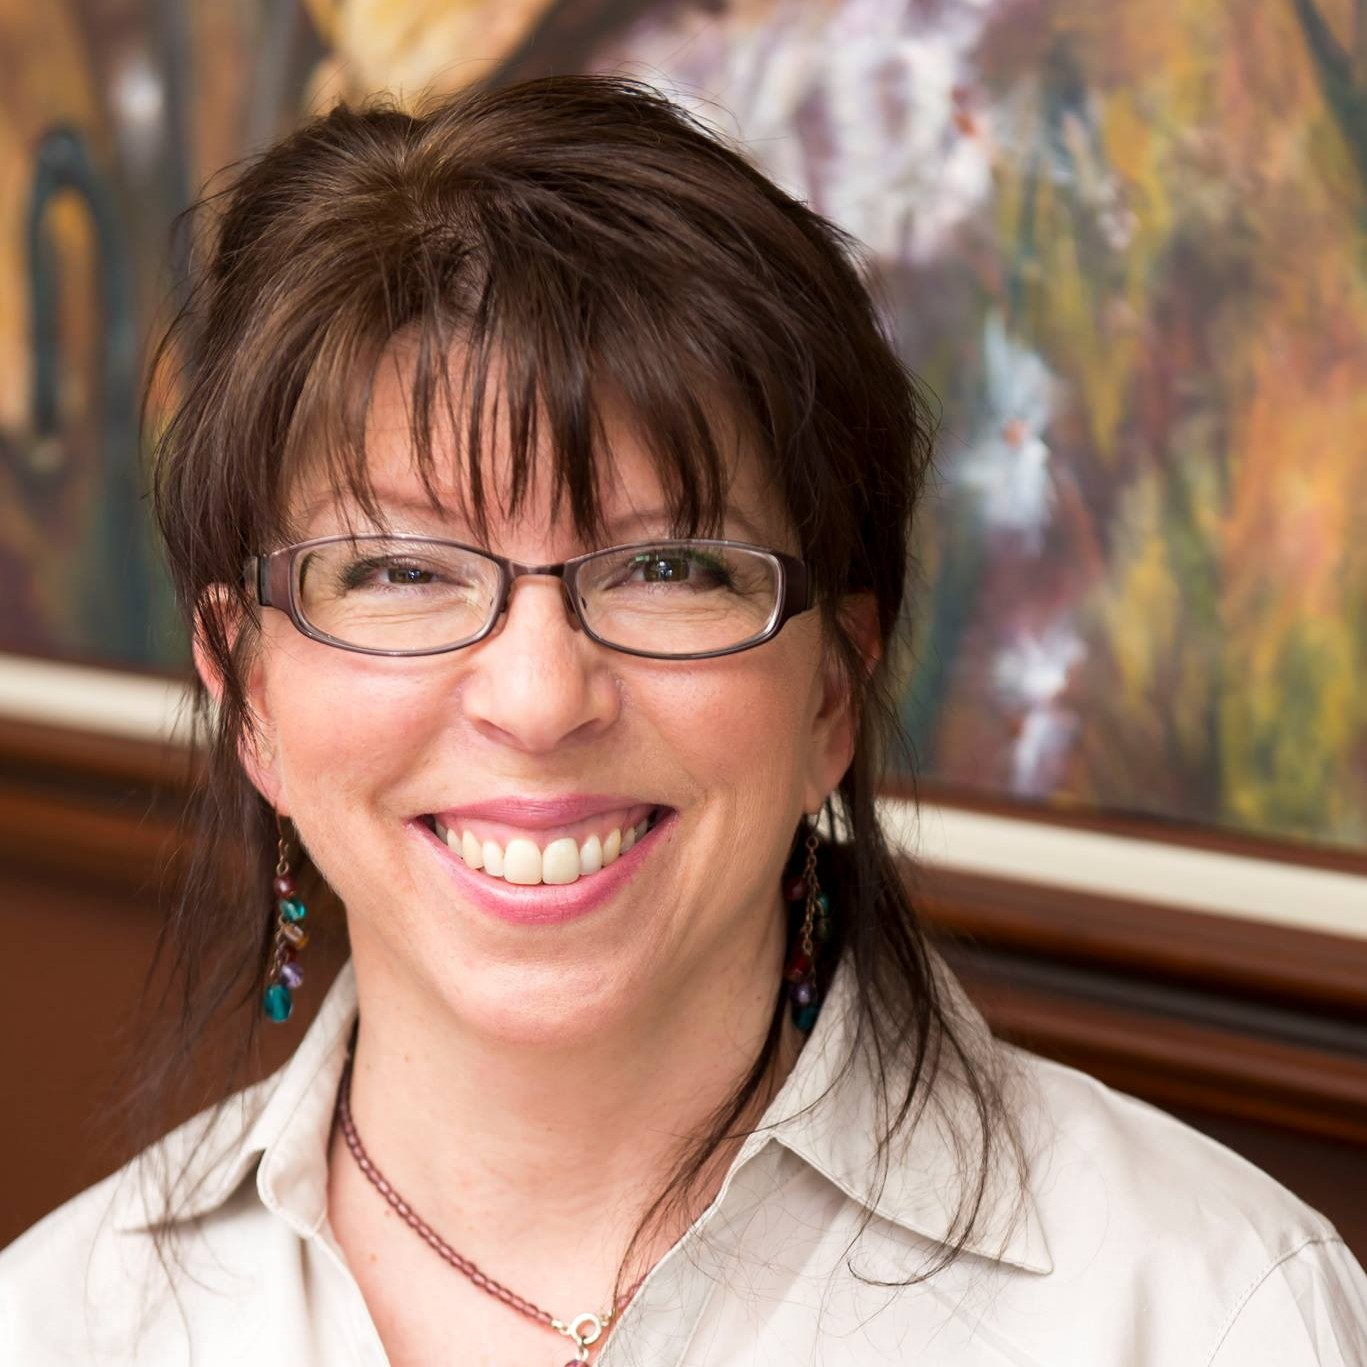 Vicki Gierach, Aesthetician/Fine Artist<br>soulfulvisions.weebly.com